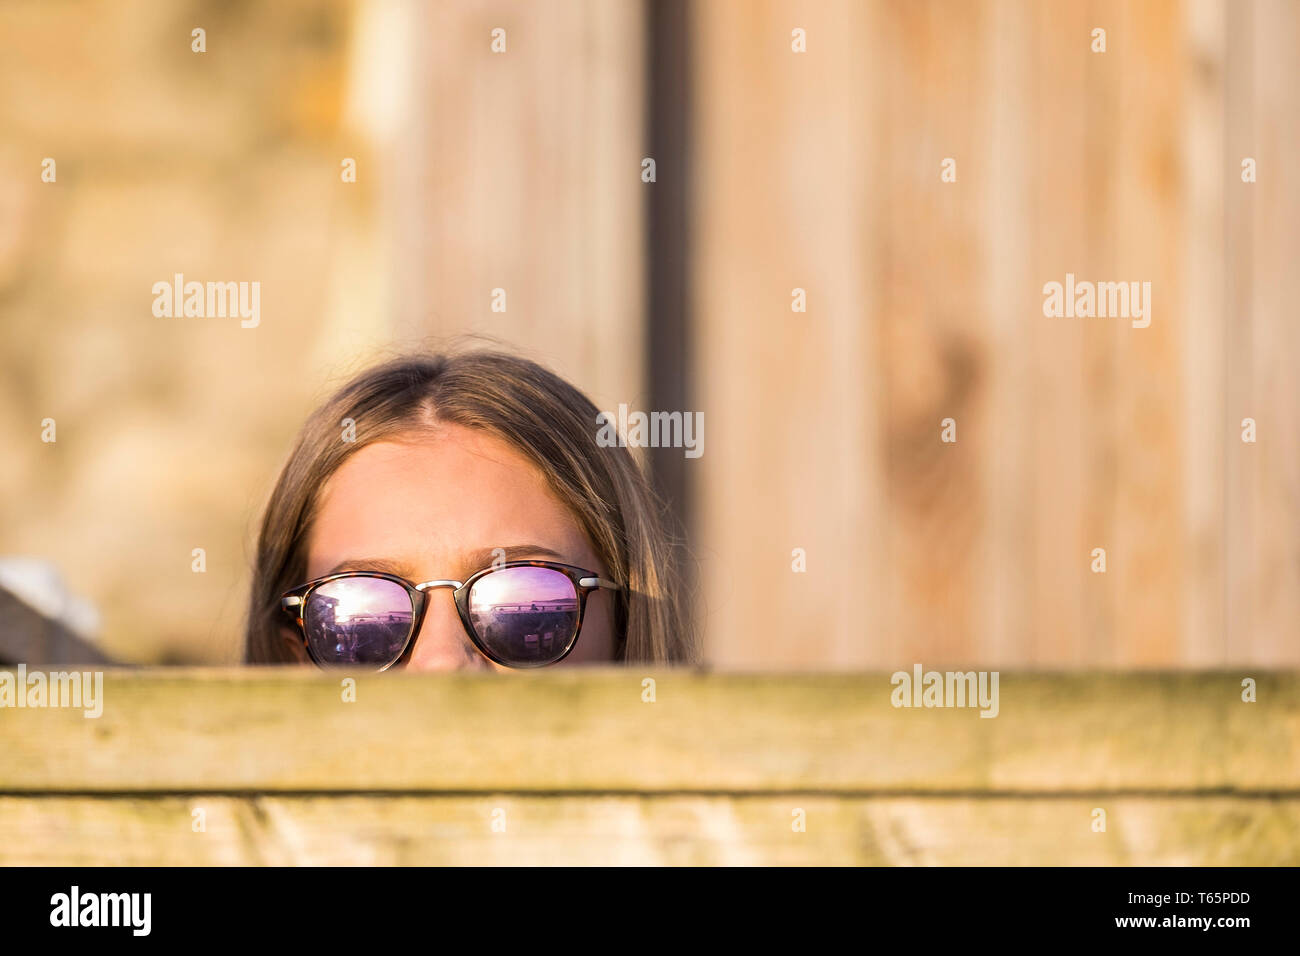 A holidaymaker wearing sunglass peeking over a wooden fence. - Stock Image